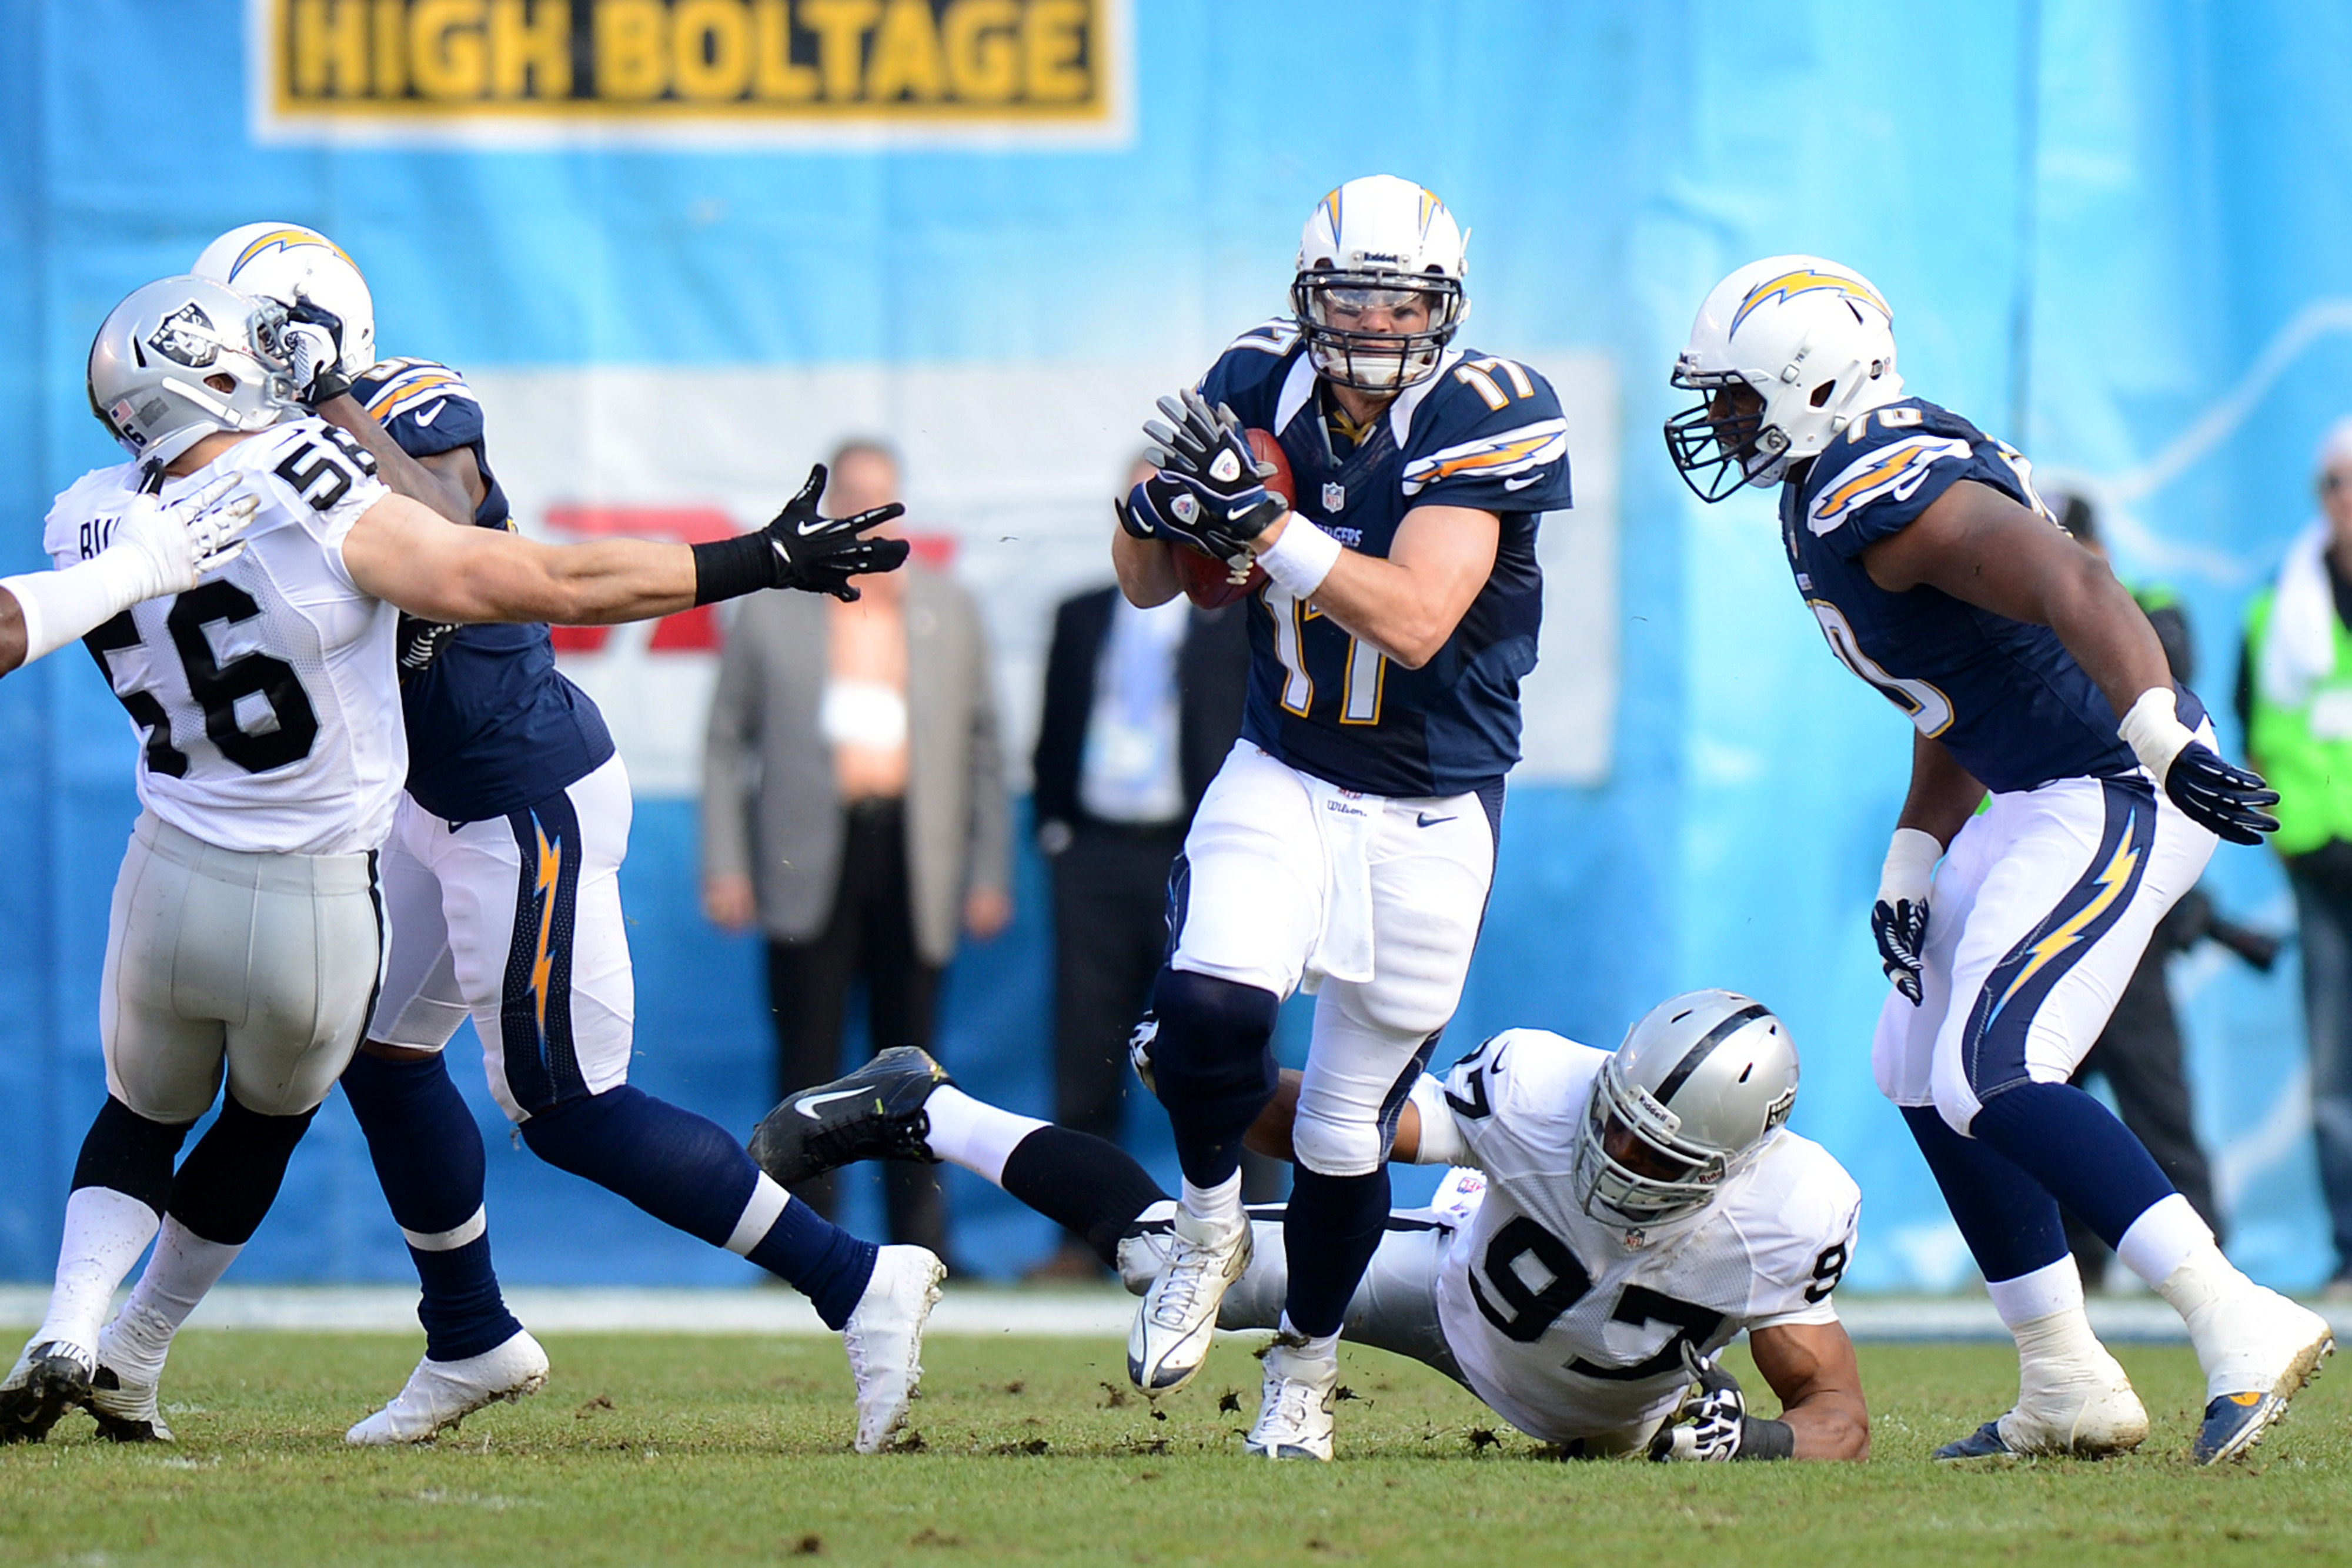 Philip Rivers can be a Pro Bowl QB, says Chargers OC Ken Whisenhunt